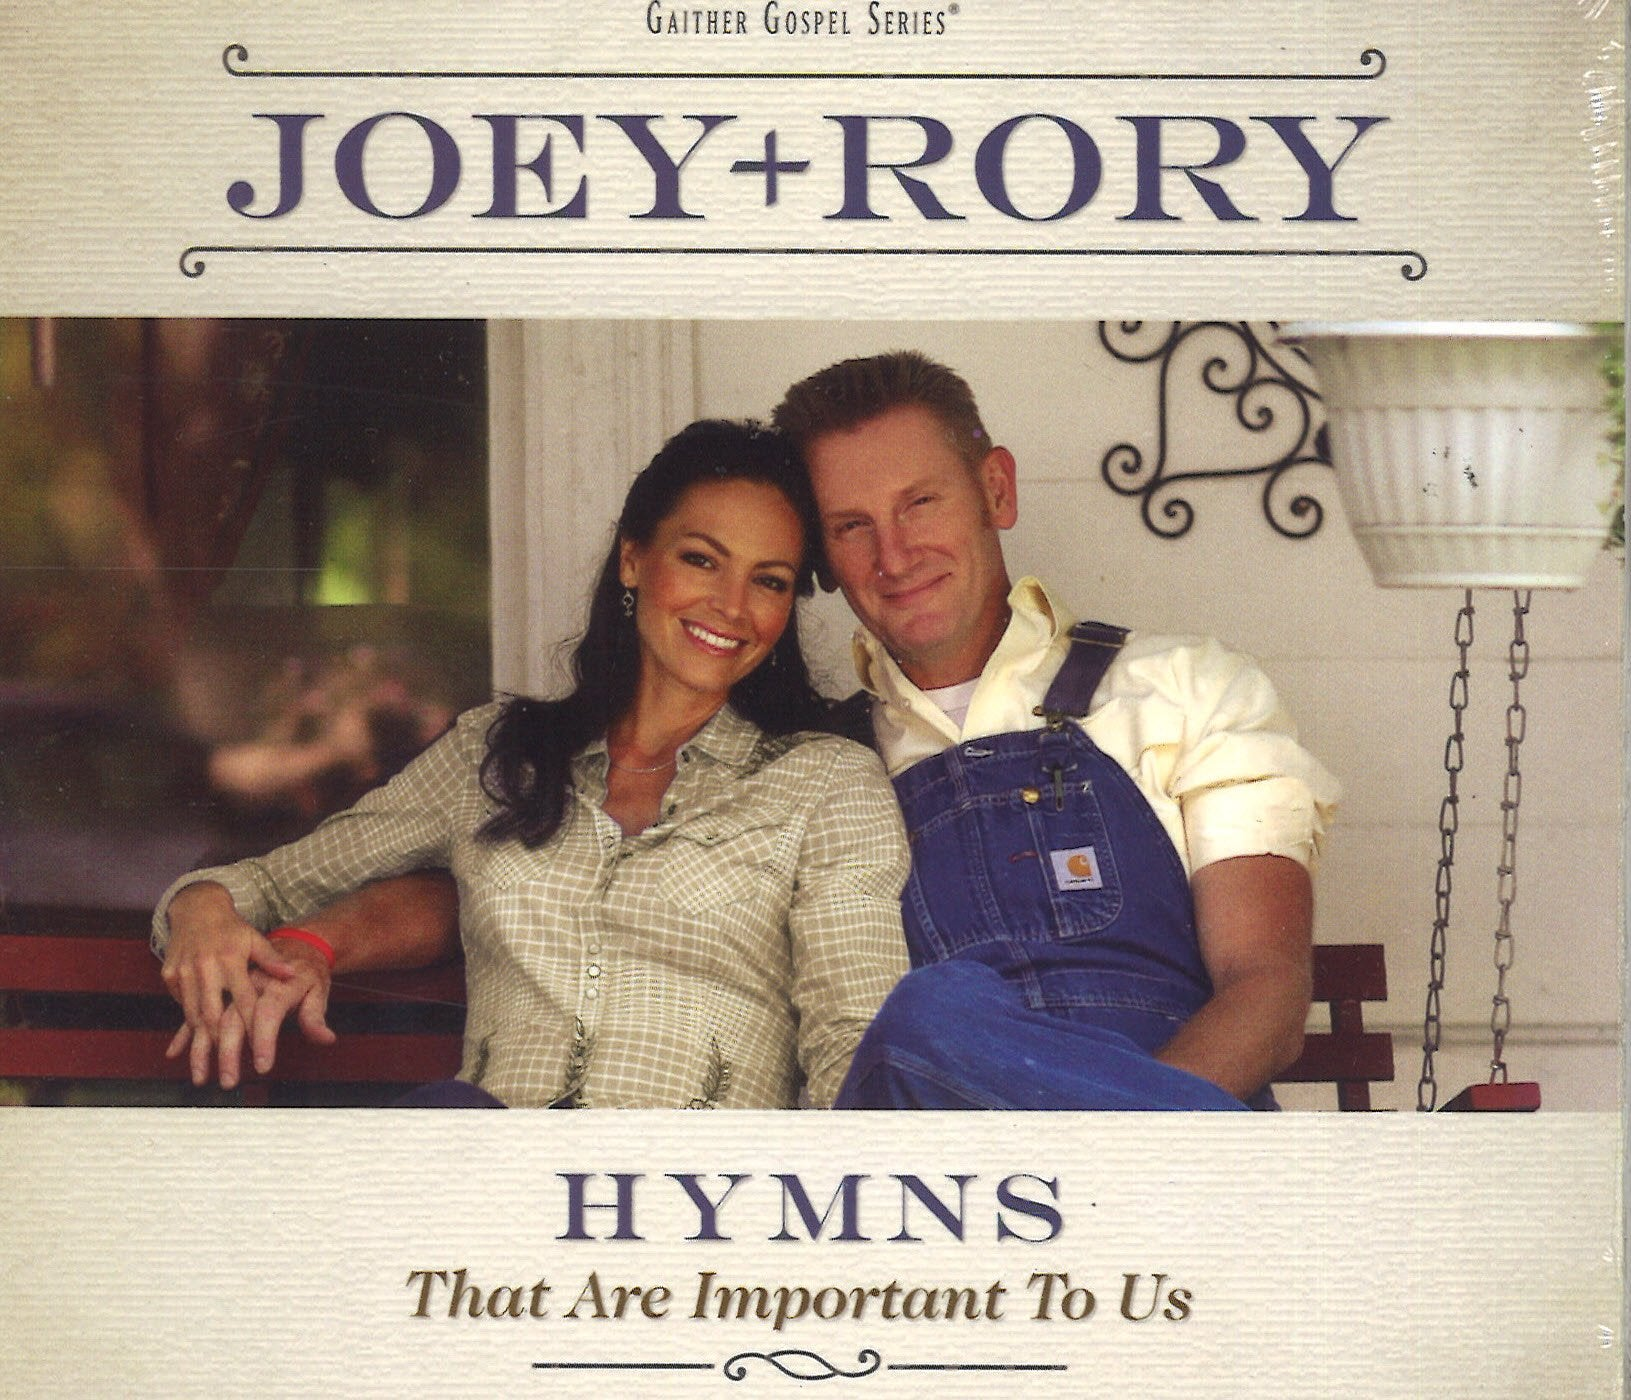 Joey + Rory Hymns That Are Important To Us